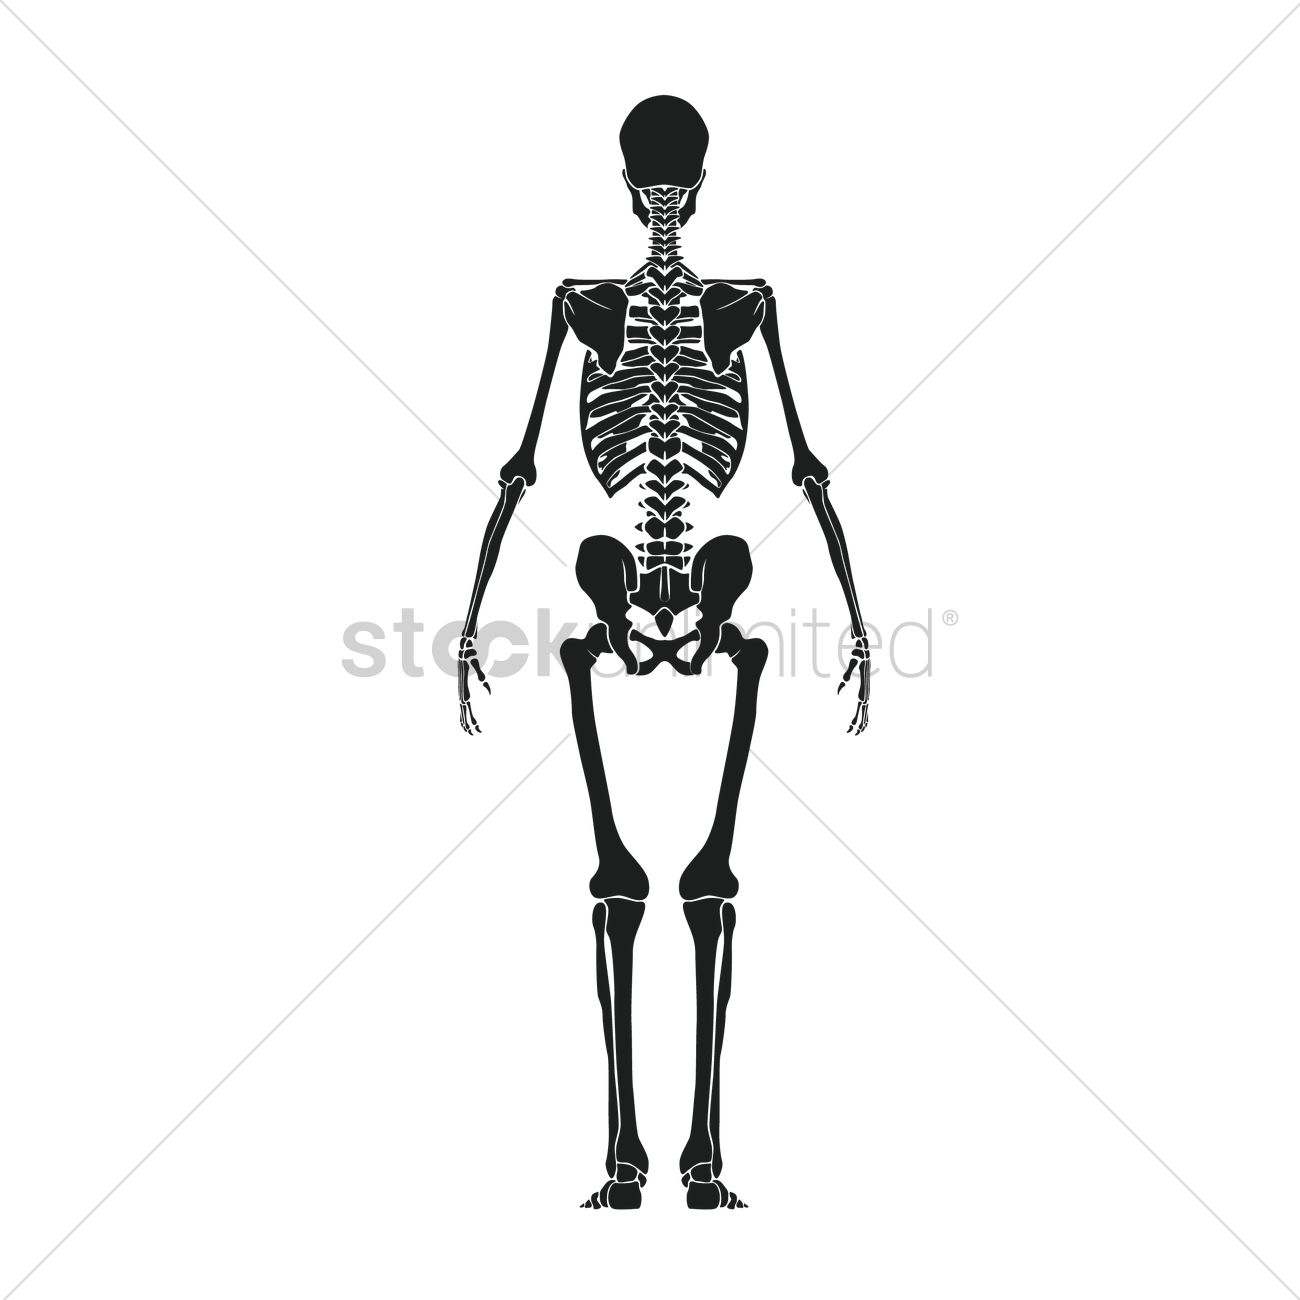 Human Skeleton Vector Cultuafo